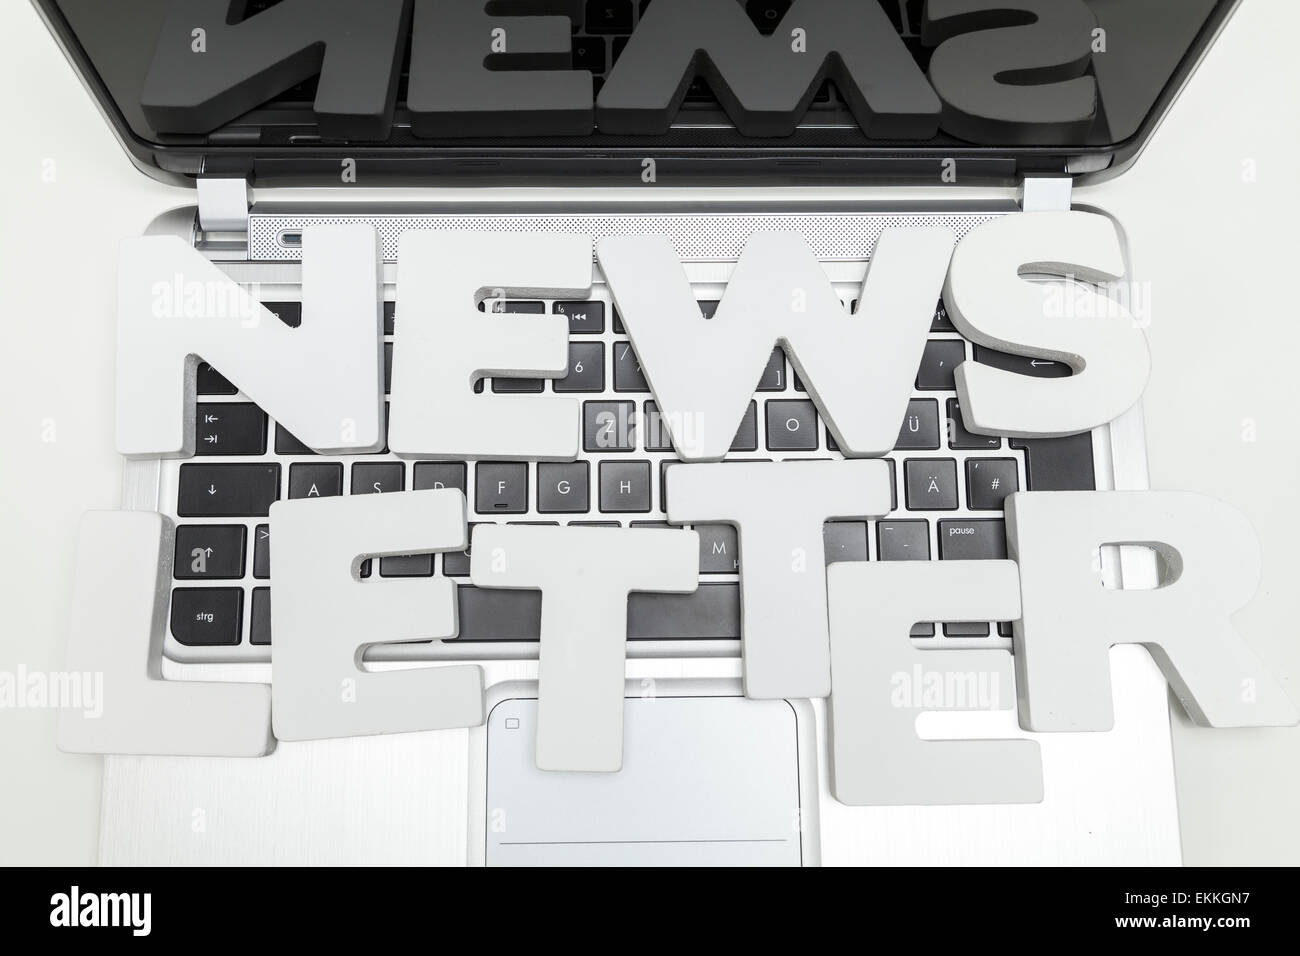 newsletter letters on keyboard of laptop - Stock Image